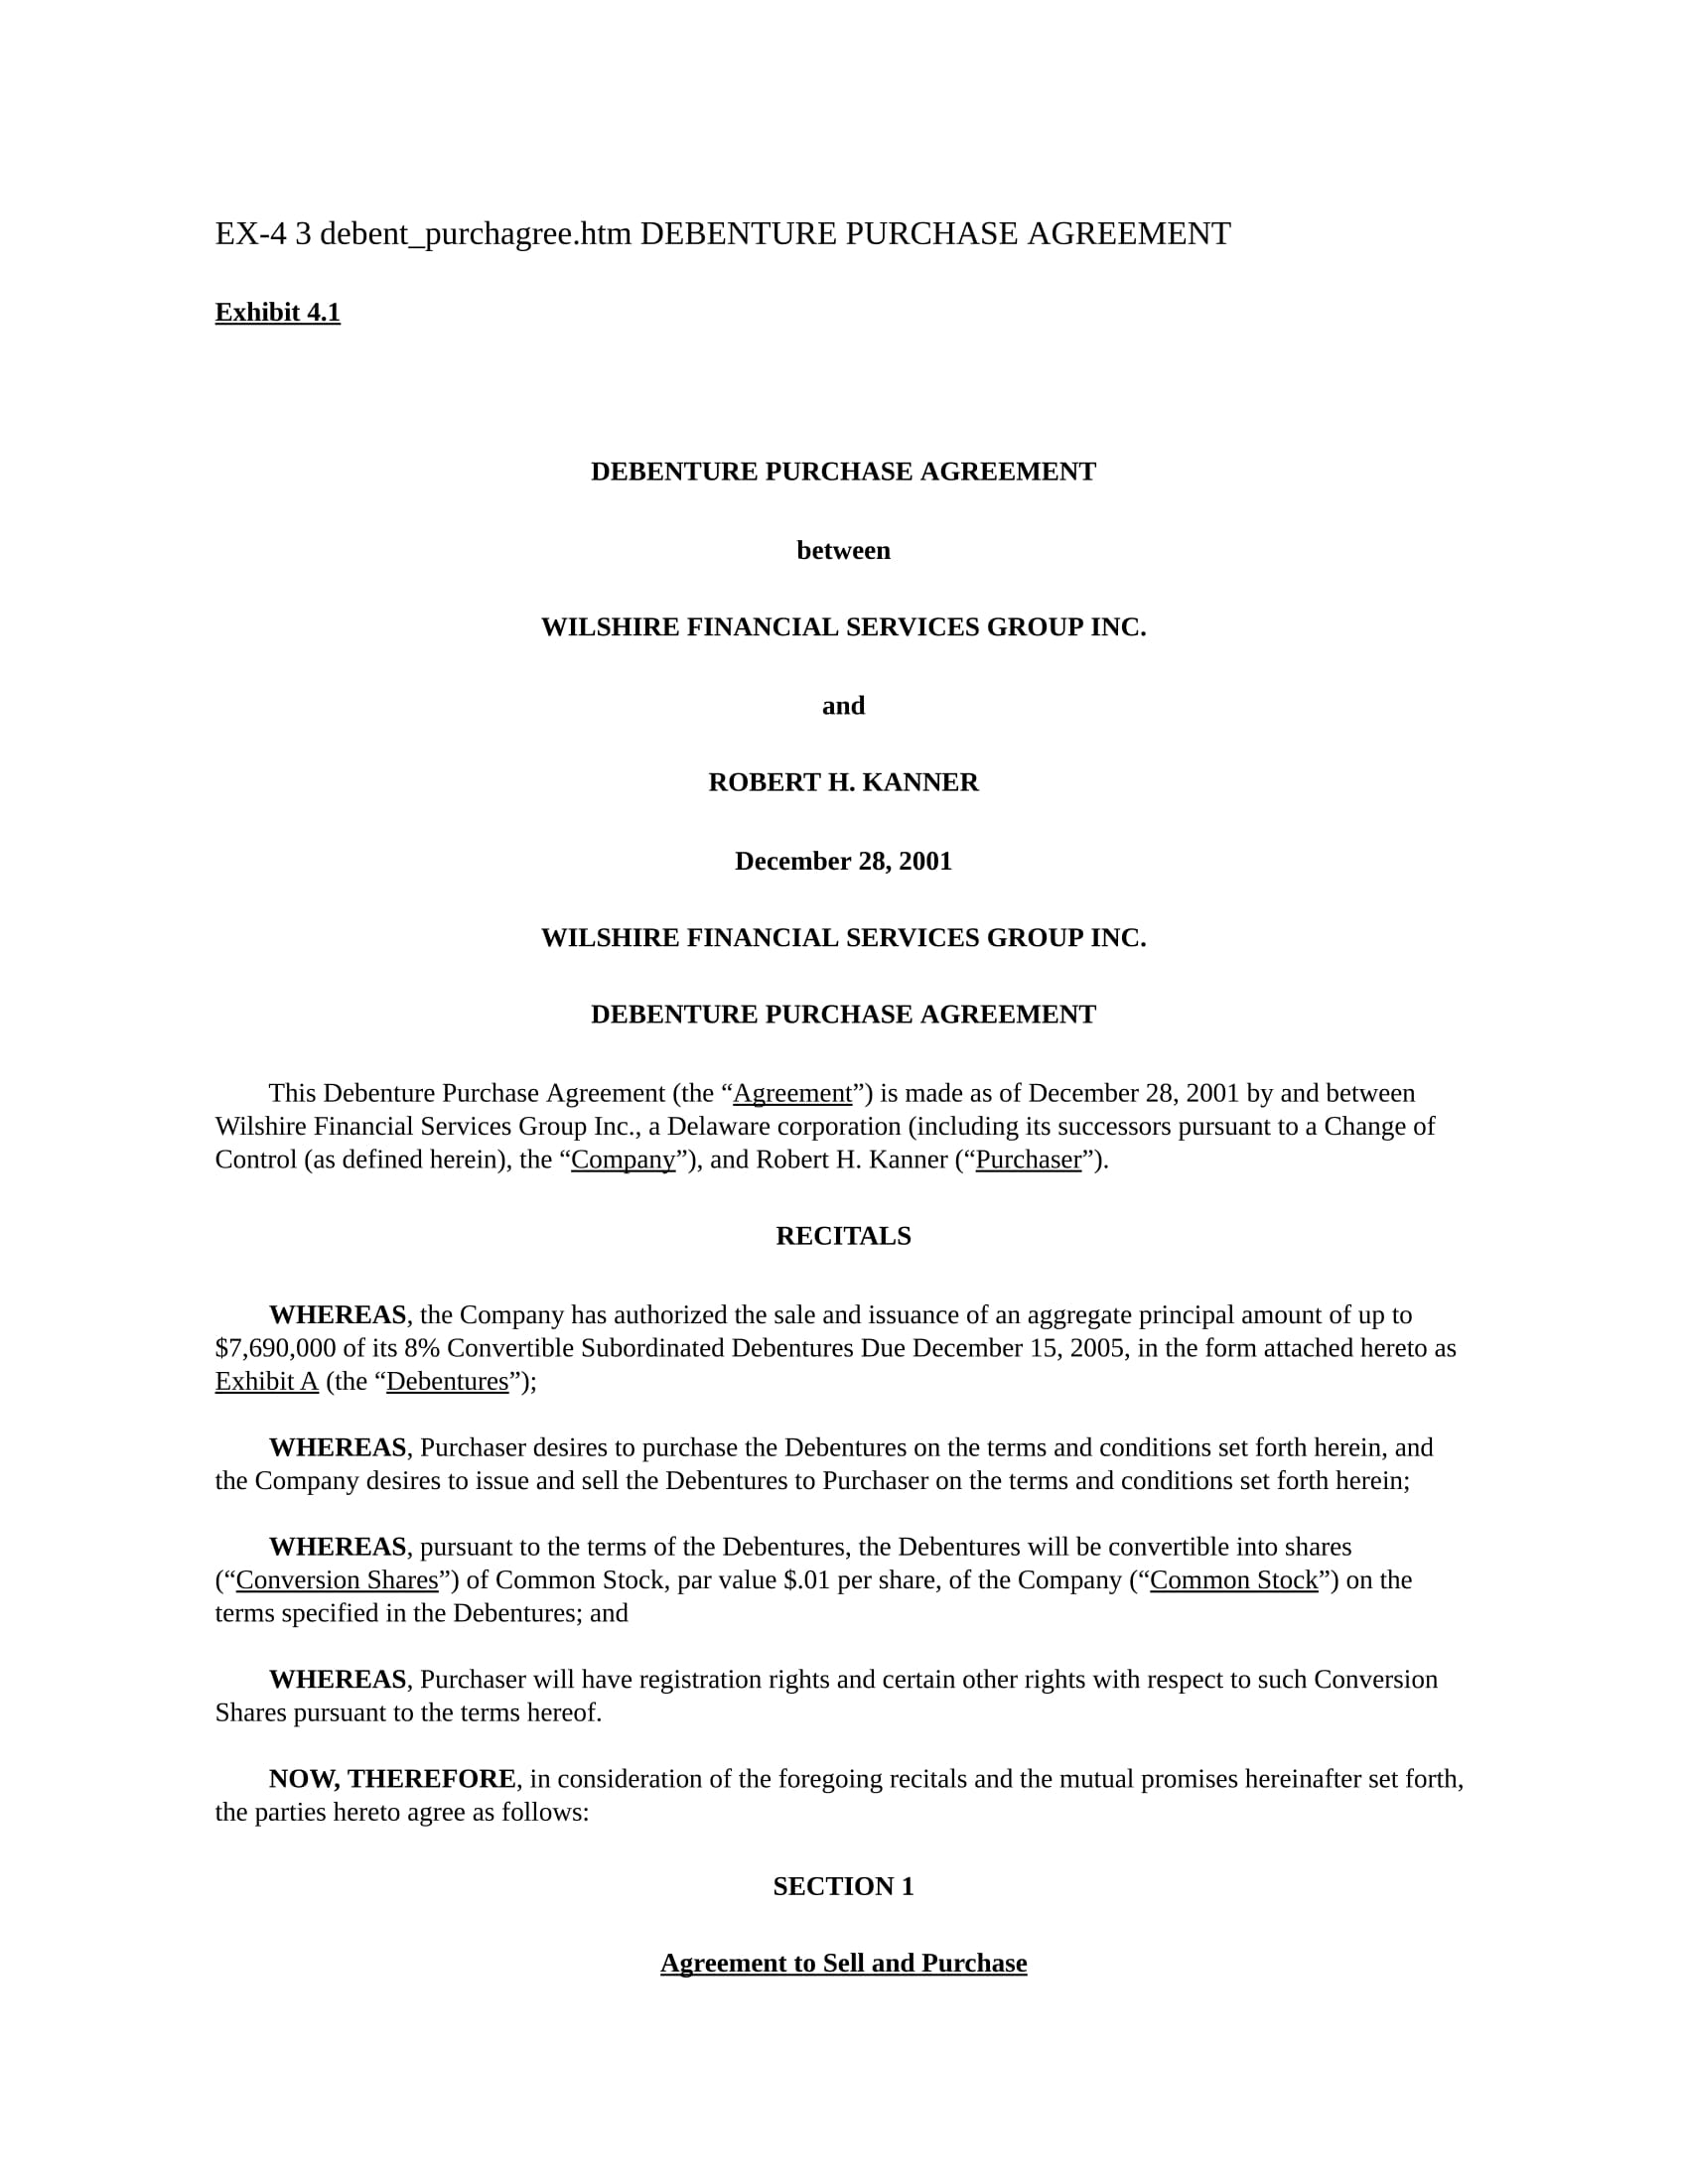 debenture purchase agreement form 01